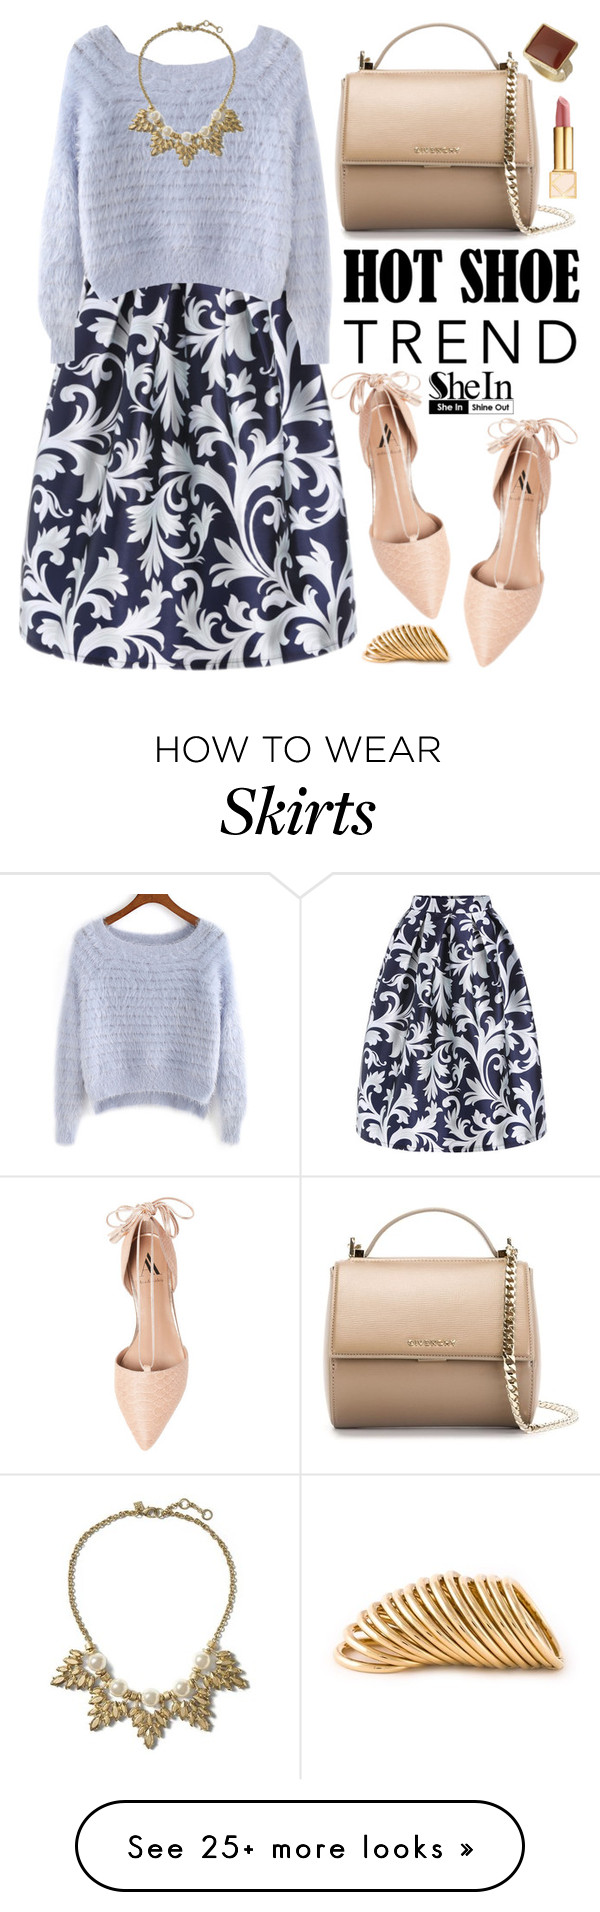 """Shein"" by oshint on Polyvore featuring Ava & Aiden, Givenchy, Tory Burch, Dorothy Perkins, Banana Republic, Shaun Leane, flats, Sheinside and shein"